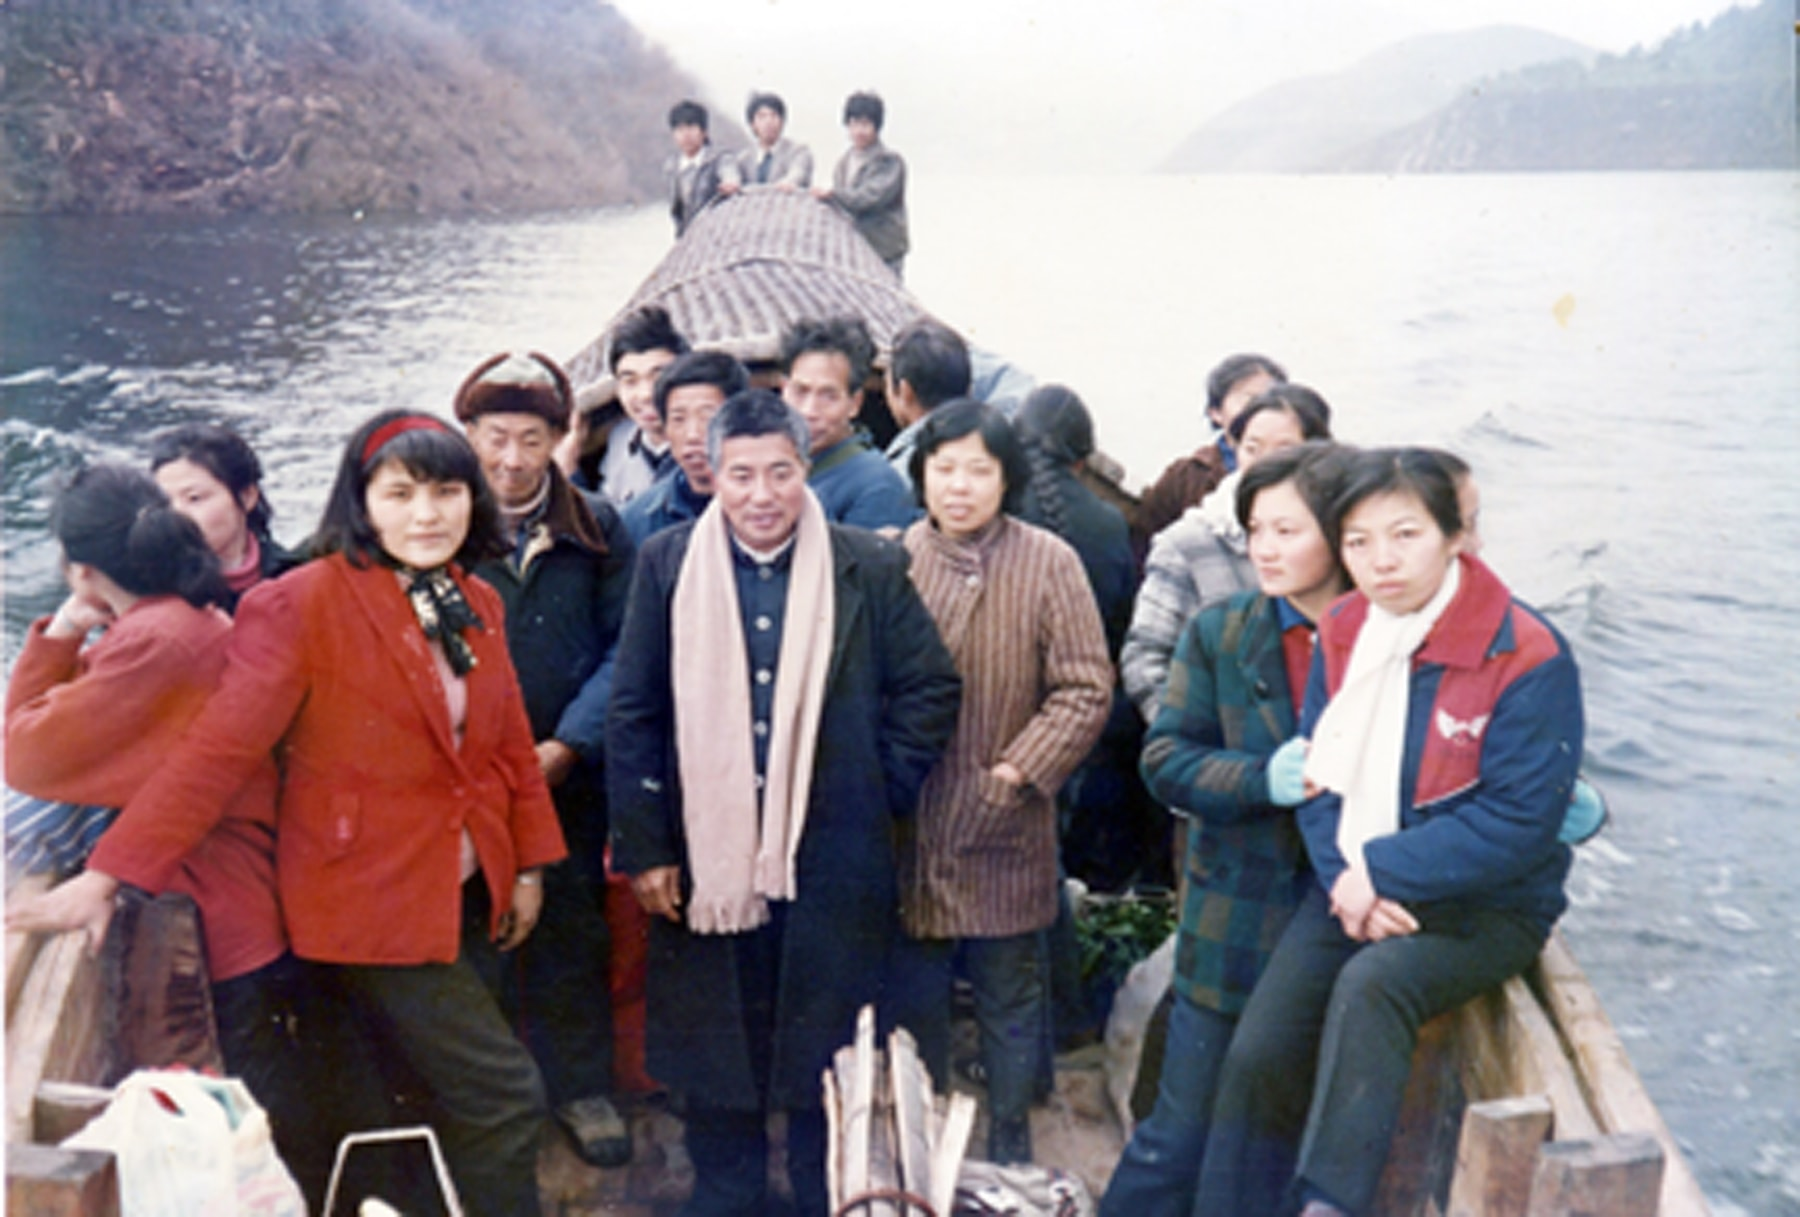 Over 20 years ago, East Gates co-workers were involved in distributing Bibles near and far in China, throughout whatever transportation means possible.